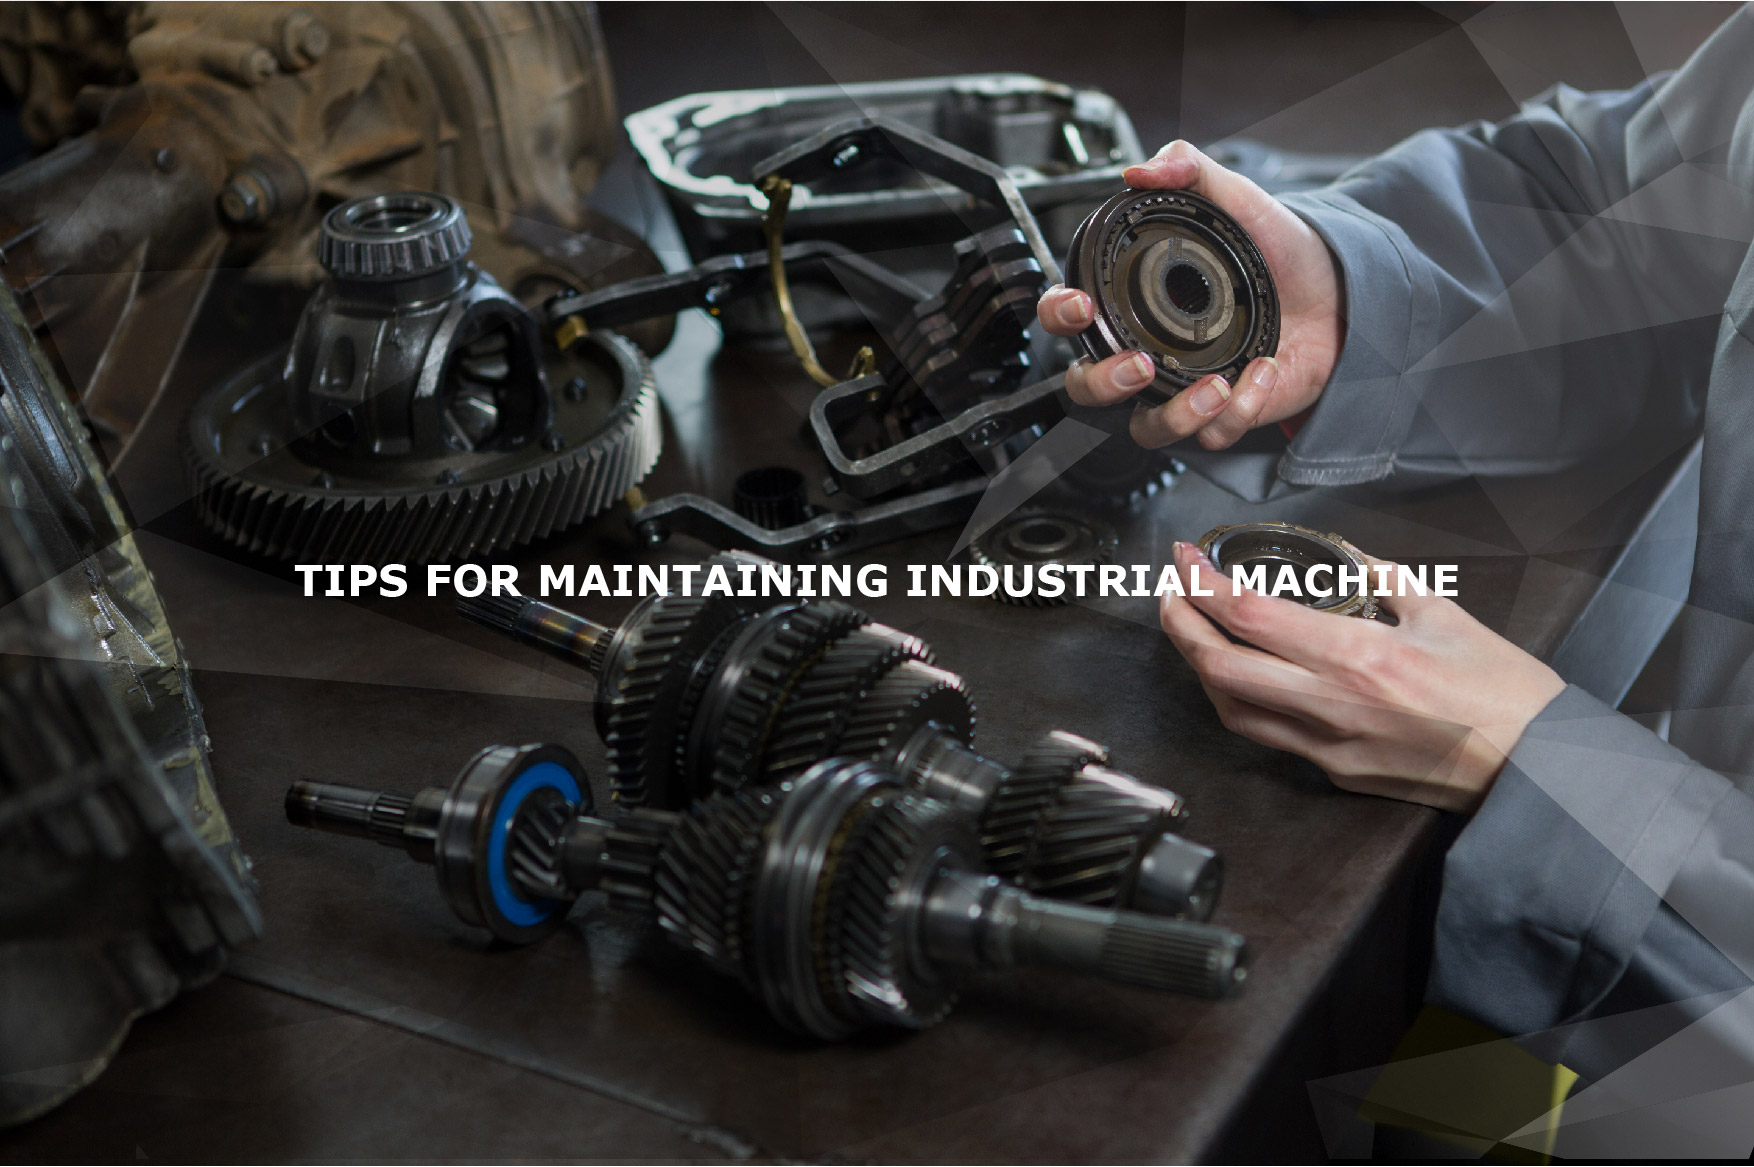 Tips for Caring for Good Industrial Machinery